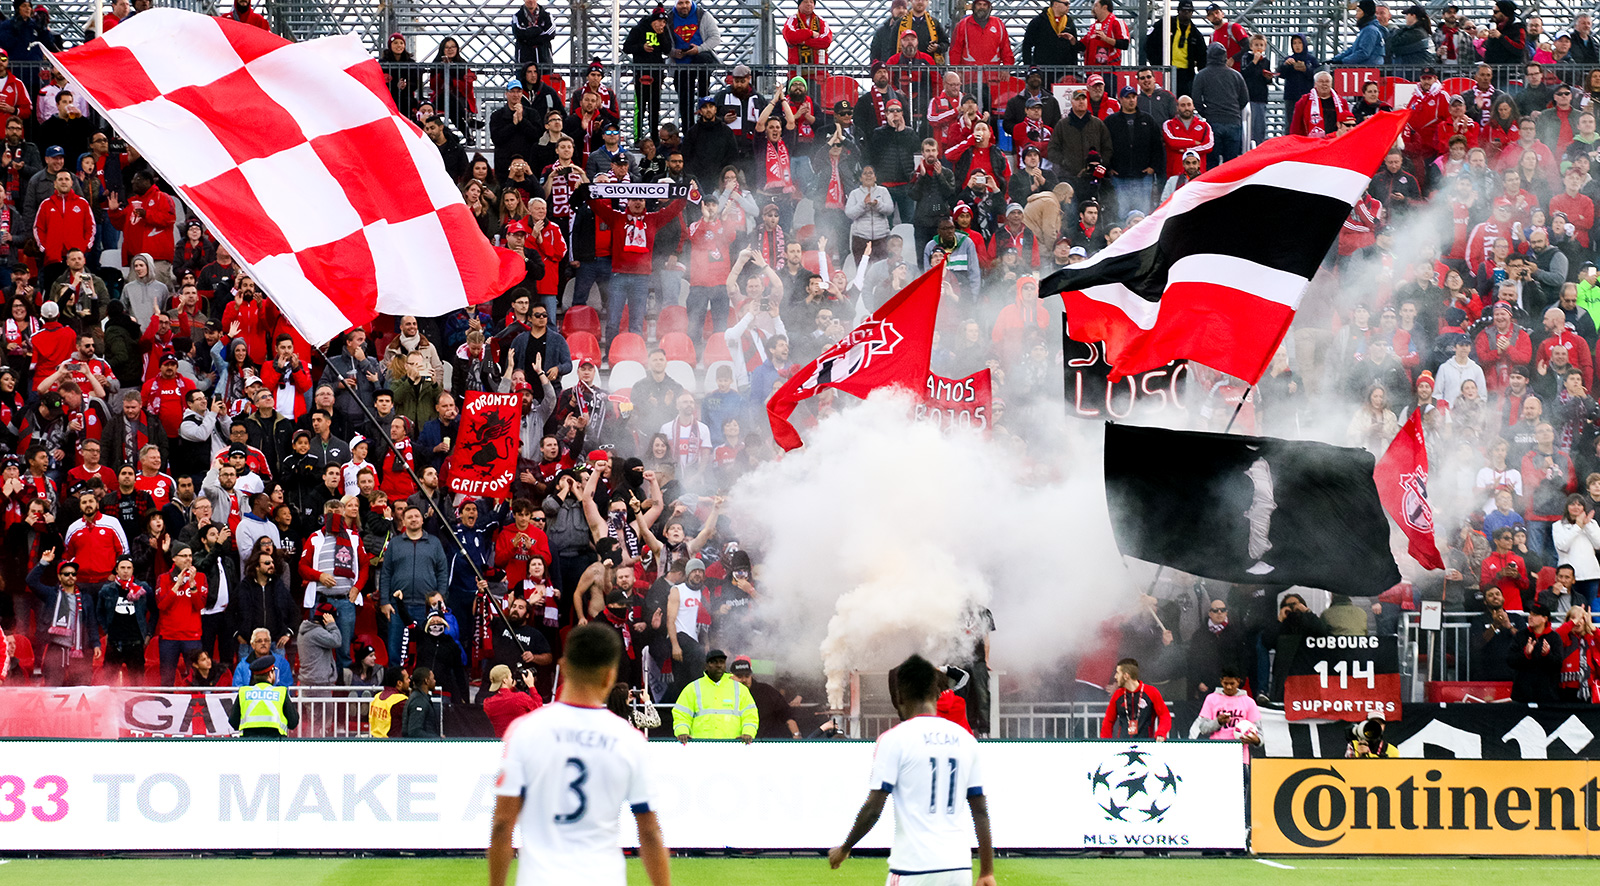 Toronto FC supporters doing their thing while two Chicago Fire players look on.